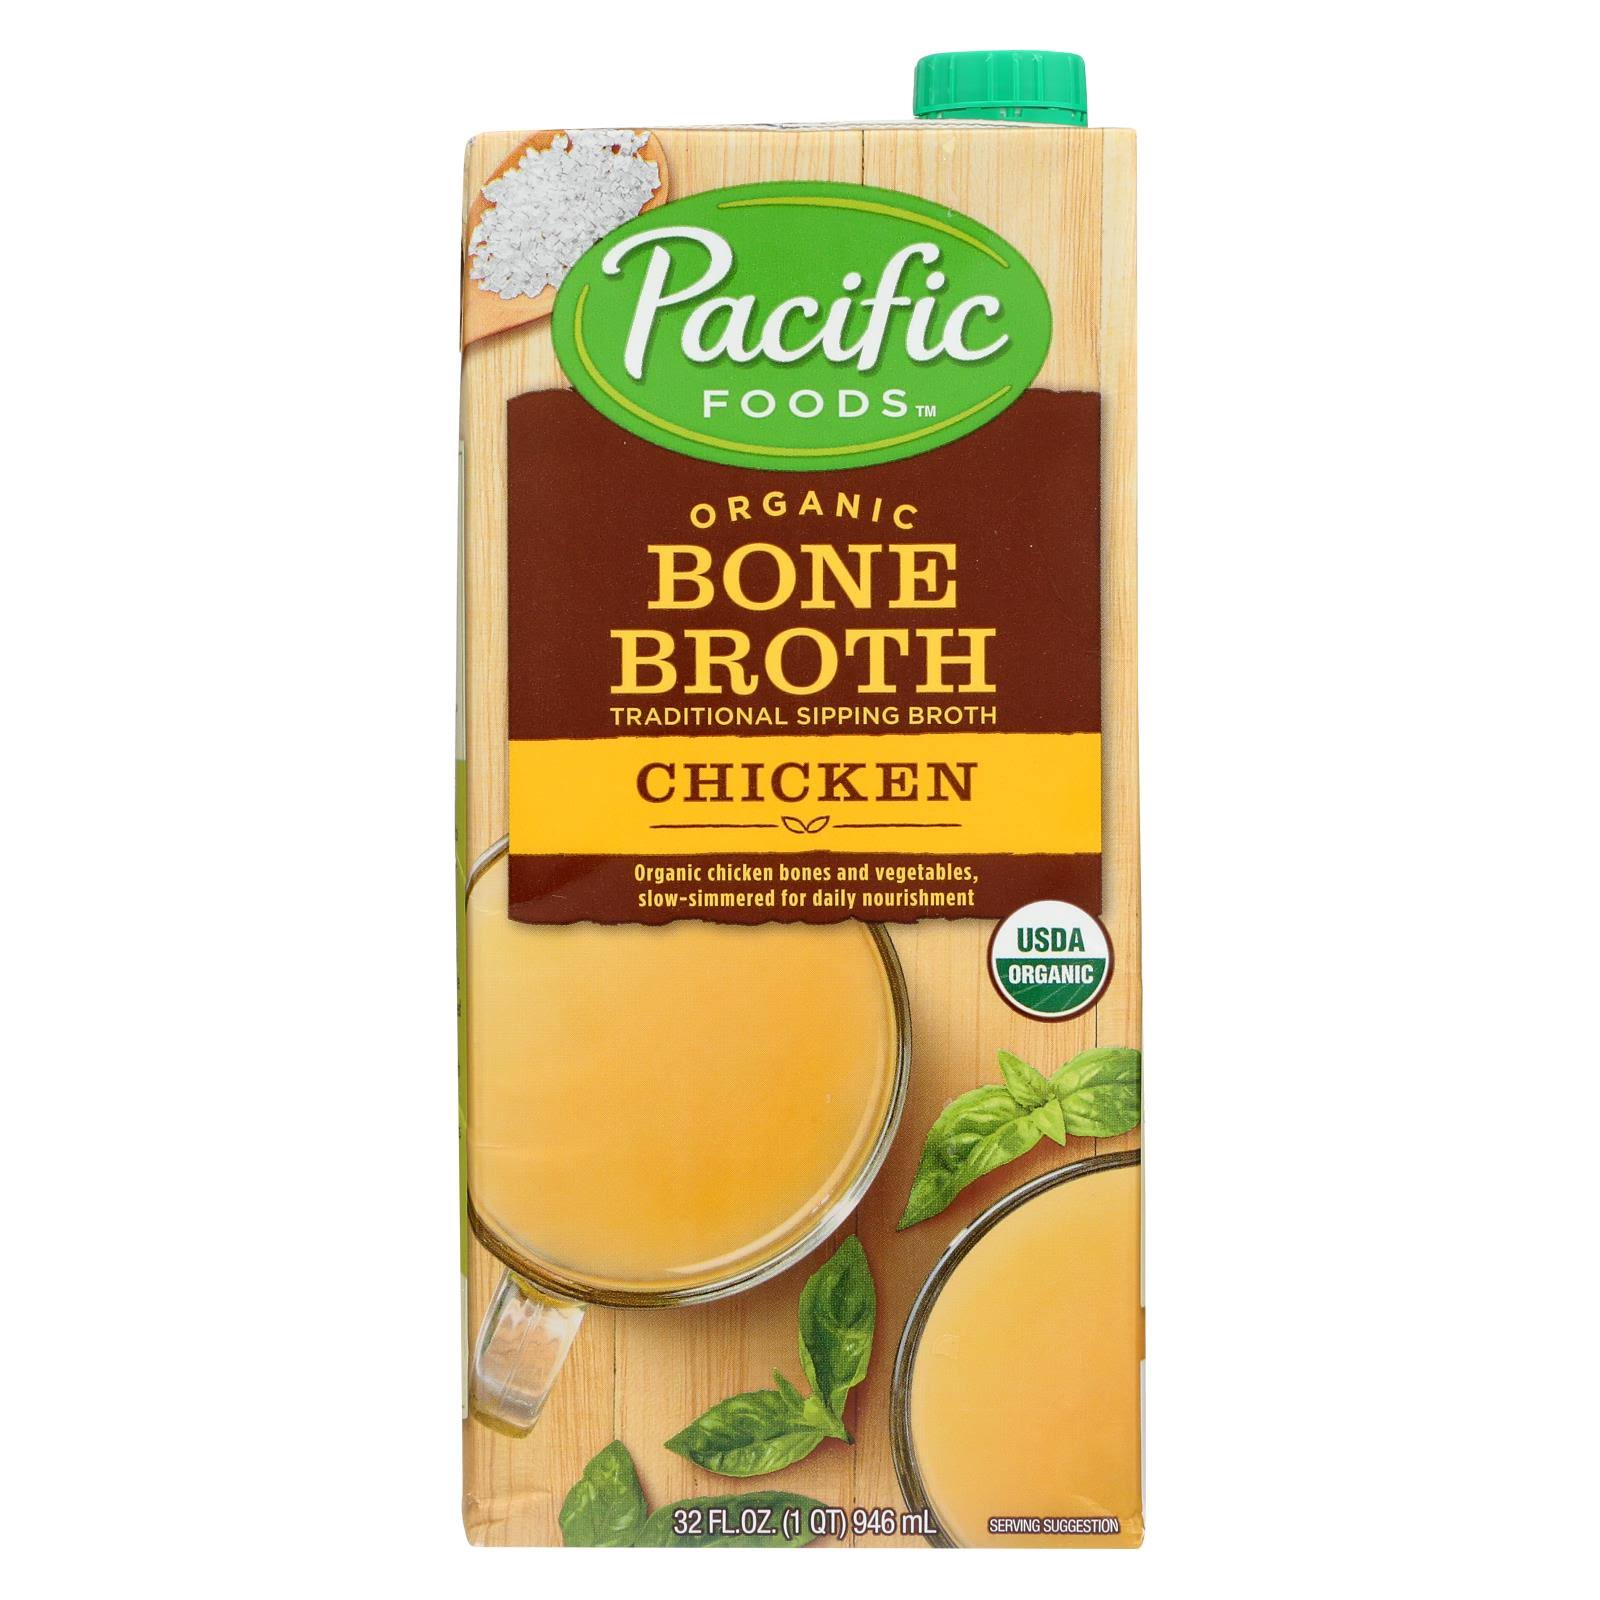 Pacific Foods Organic Bone Broth - Original Chicken, 32oz